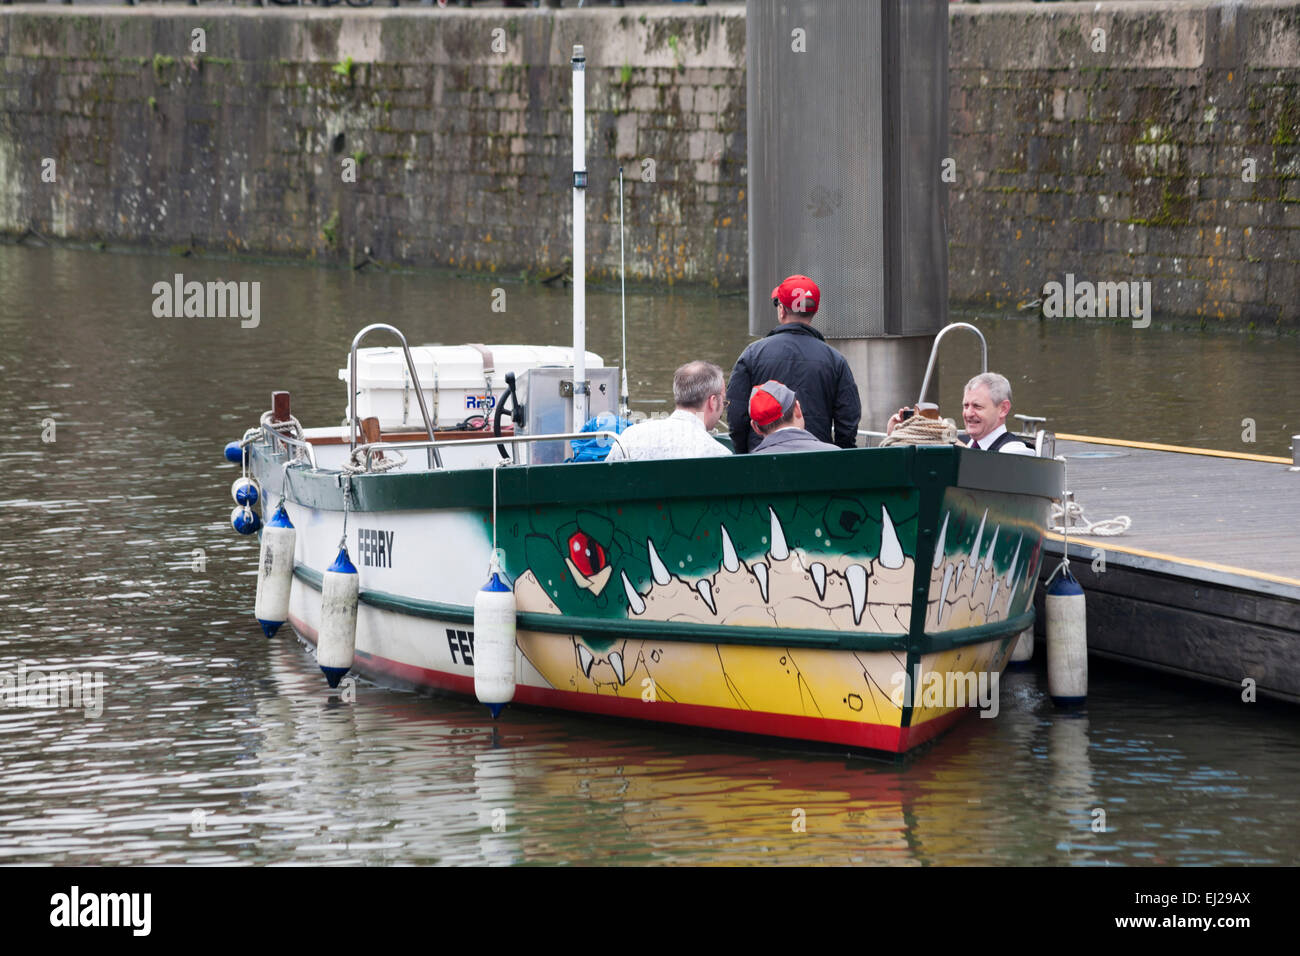 Taking a ride on the ferry on the River Avon at Bristol in May - Stock Image